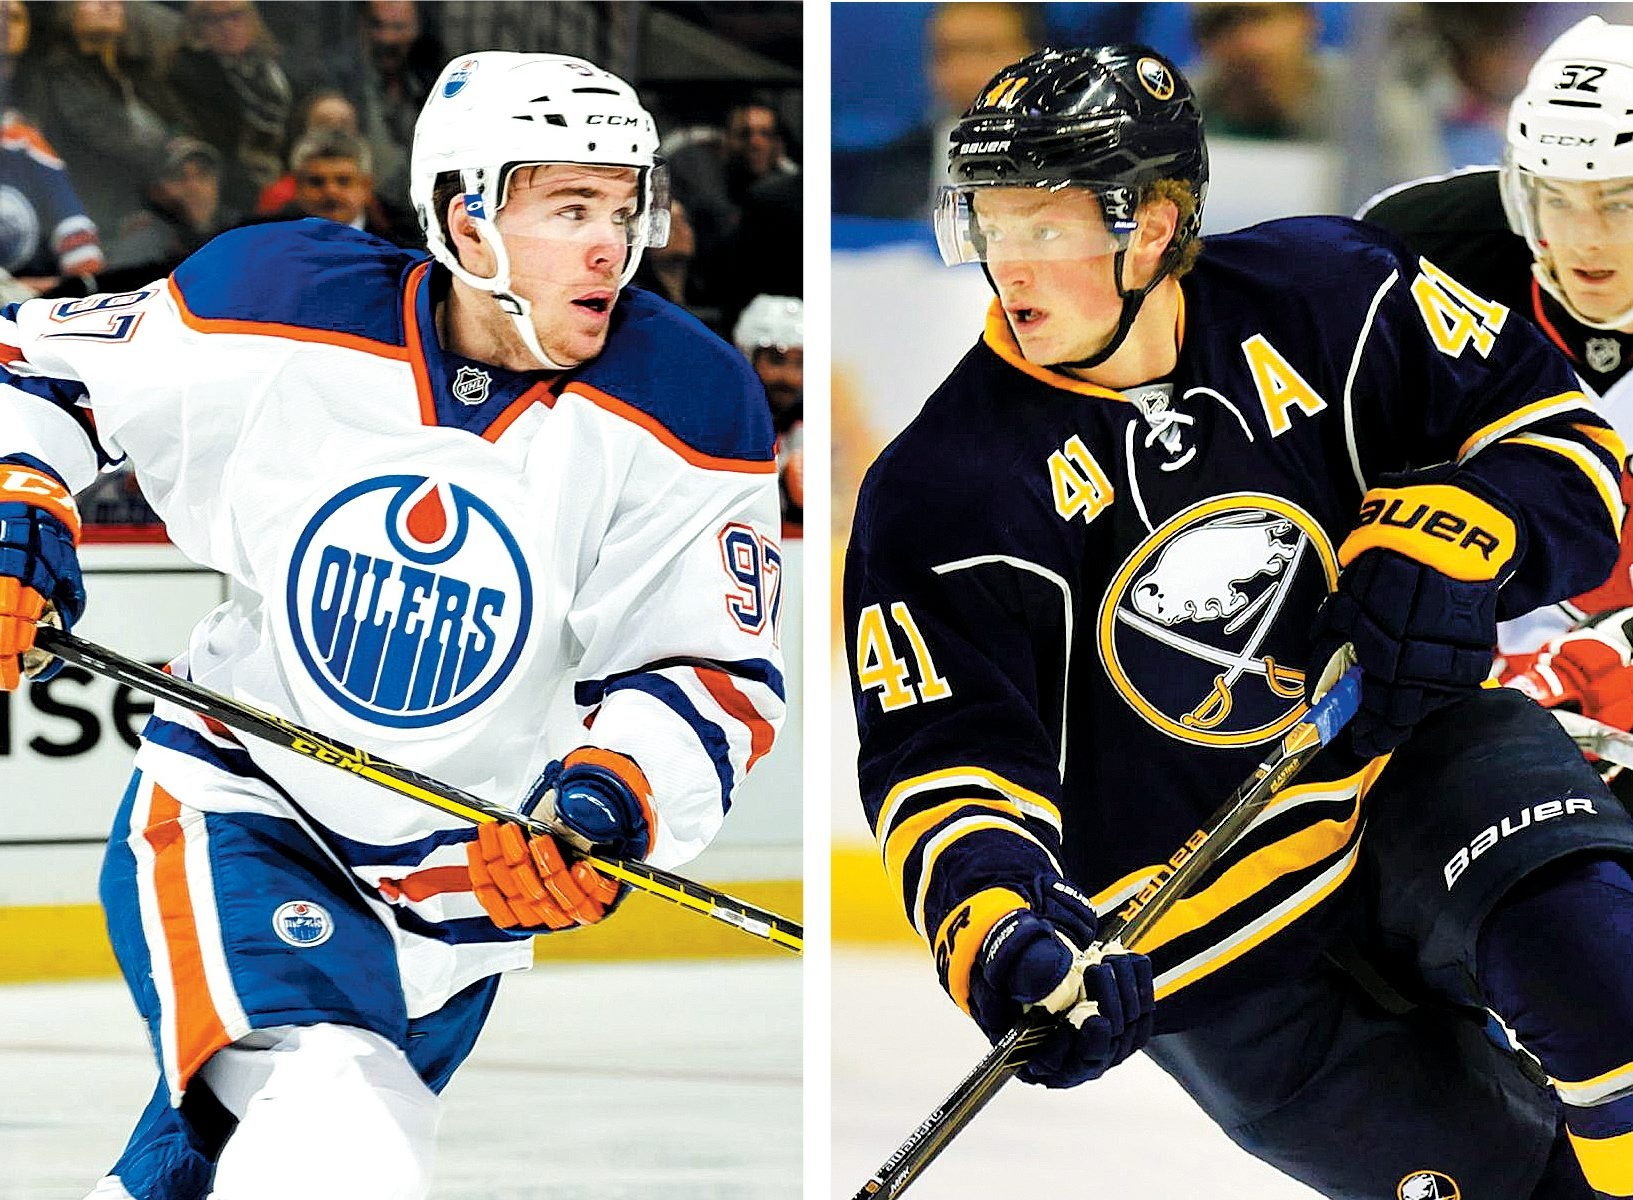 Connor McDavid and Jack Eichel were on the same power-play unit during Tuesday's North America practice in Montreal.